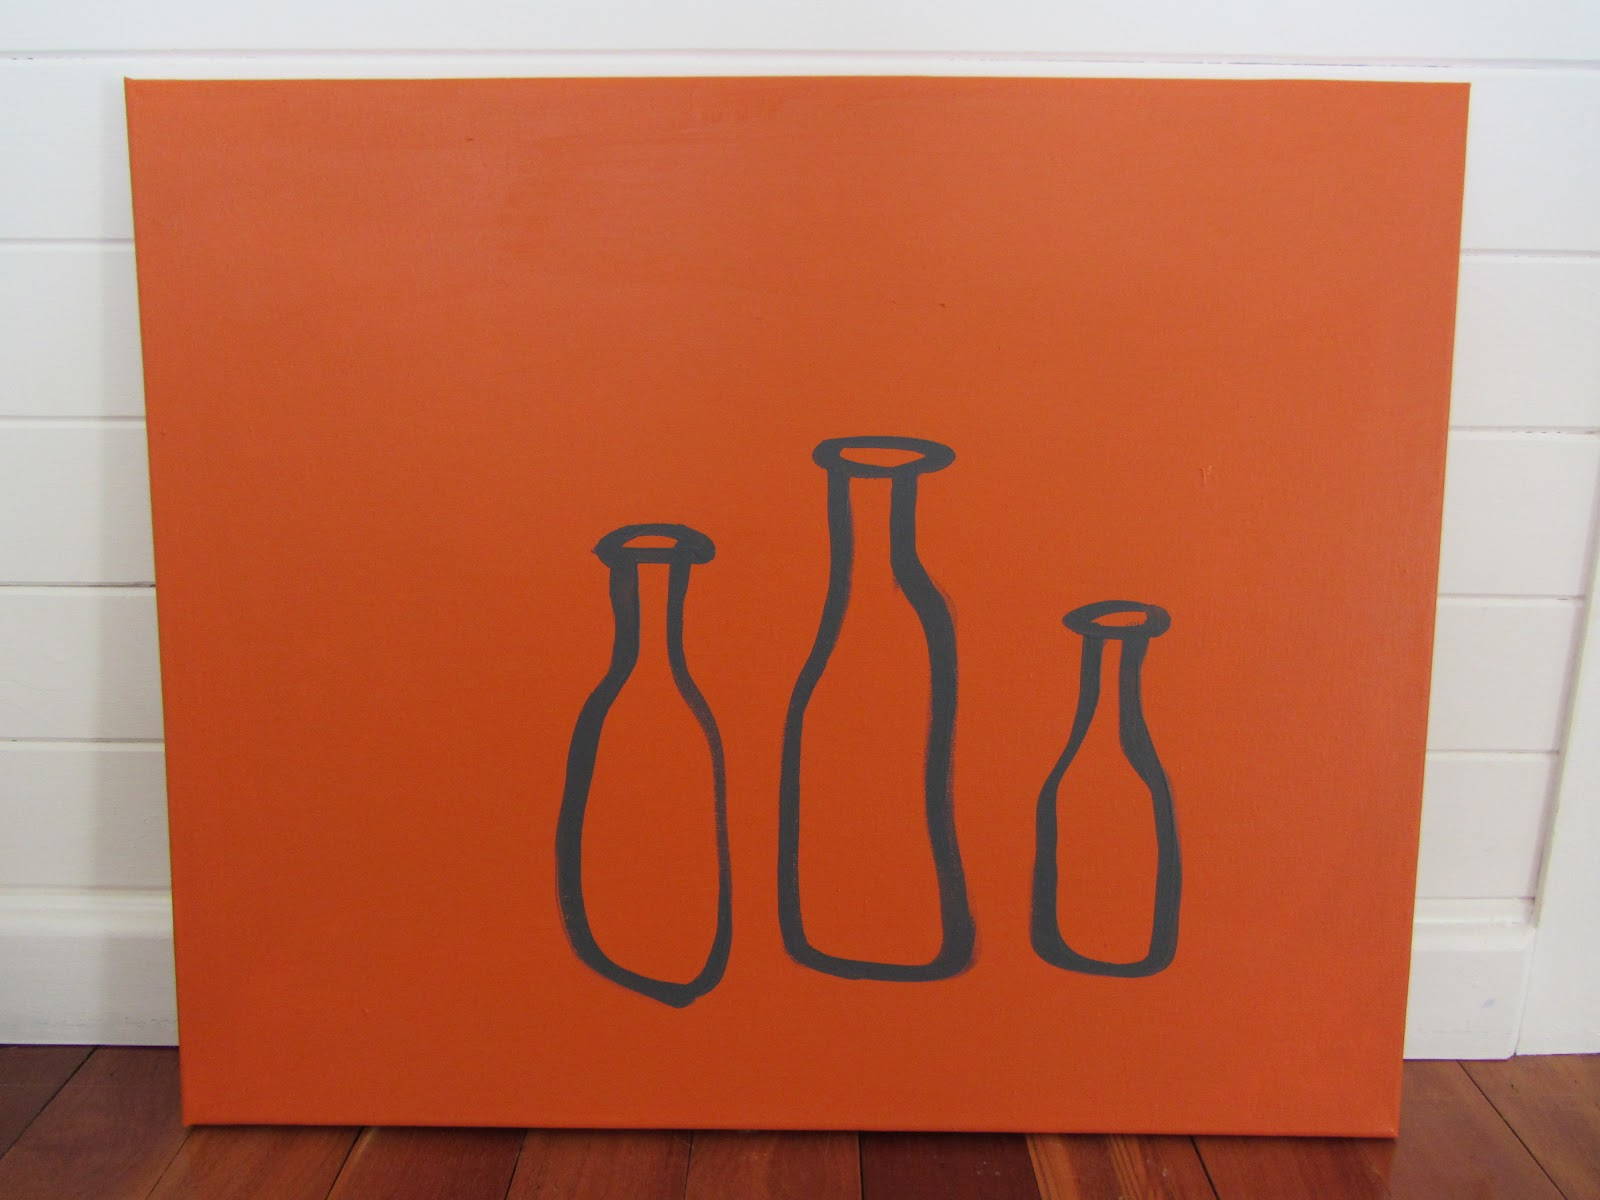 This Painting On Canvas Project Is Really Very Easy And It Looks So Nice Modern Last Year I Did A Couple Of Other Paintings In Similar Simple Style